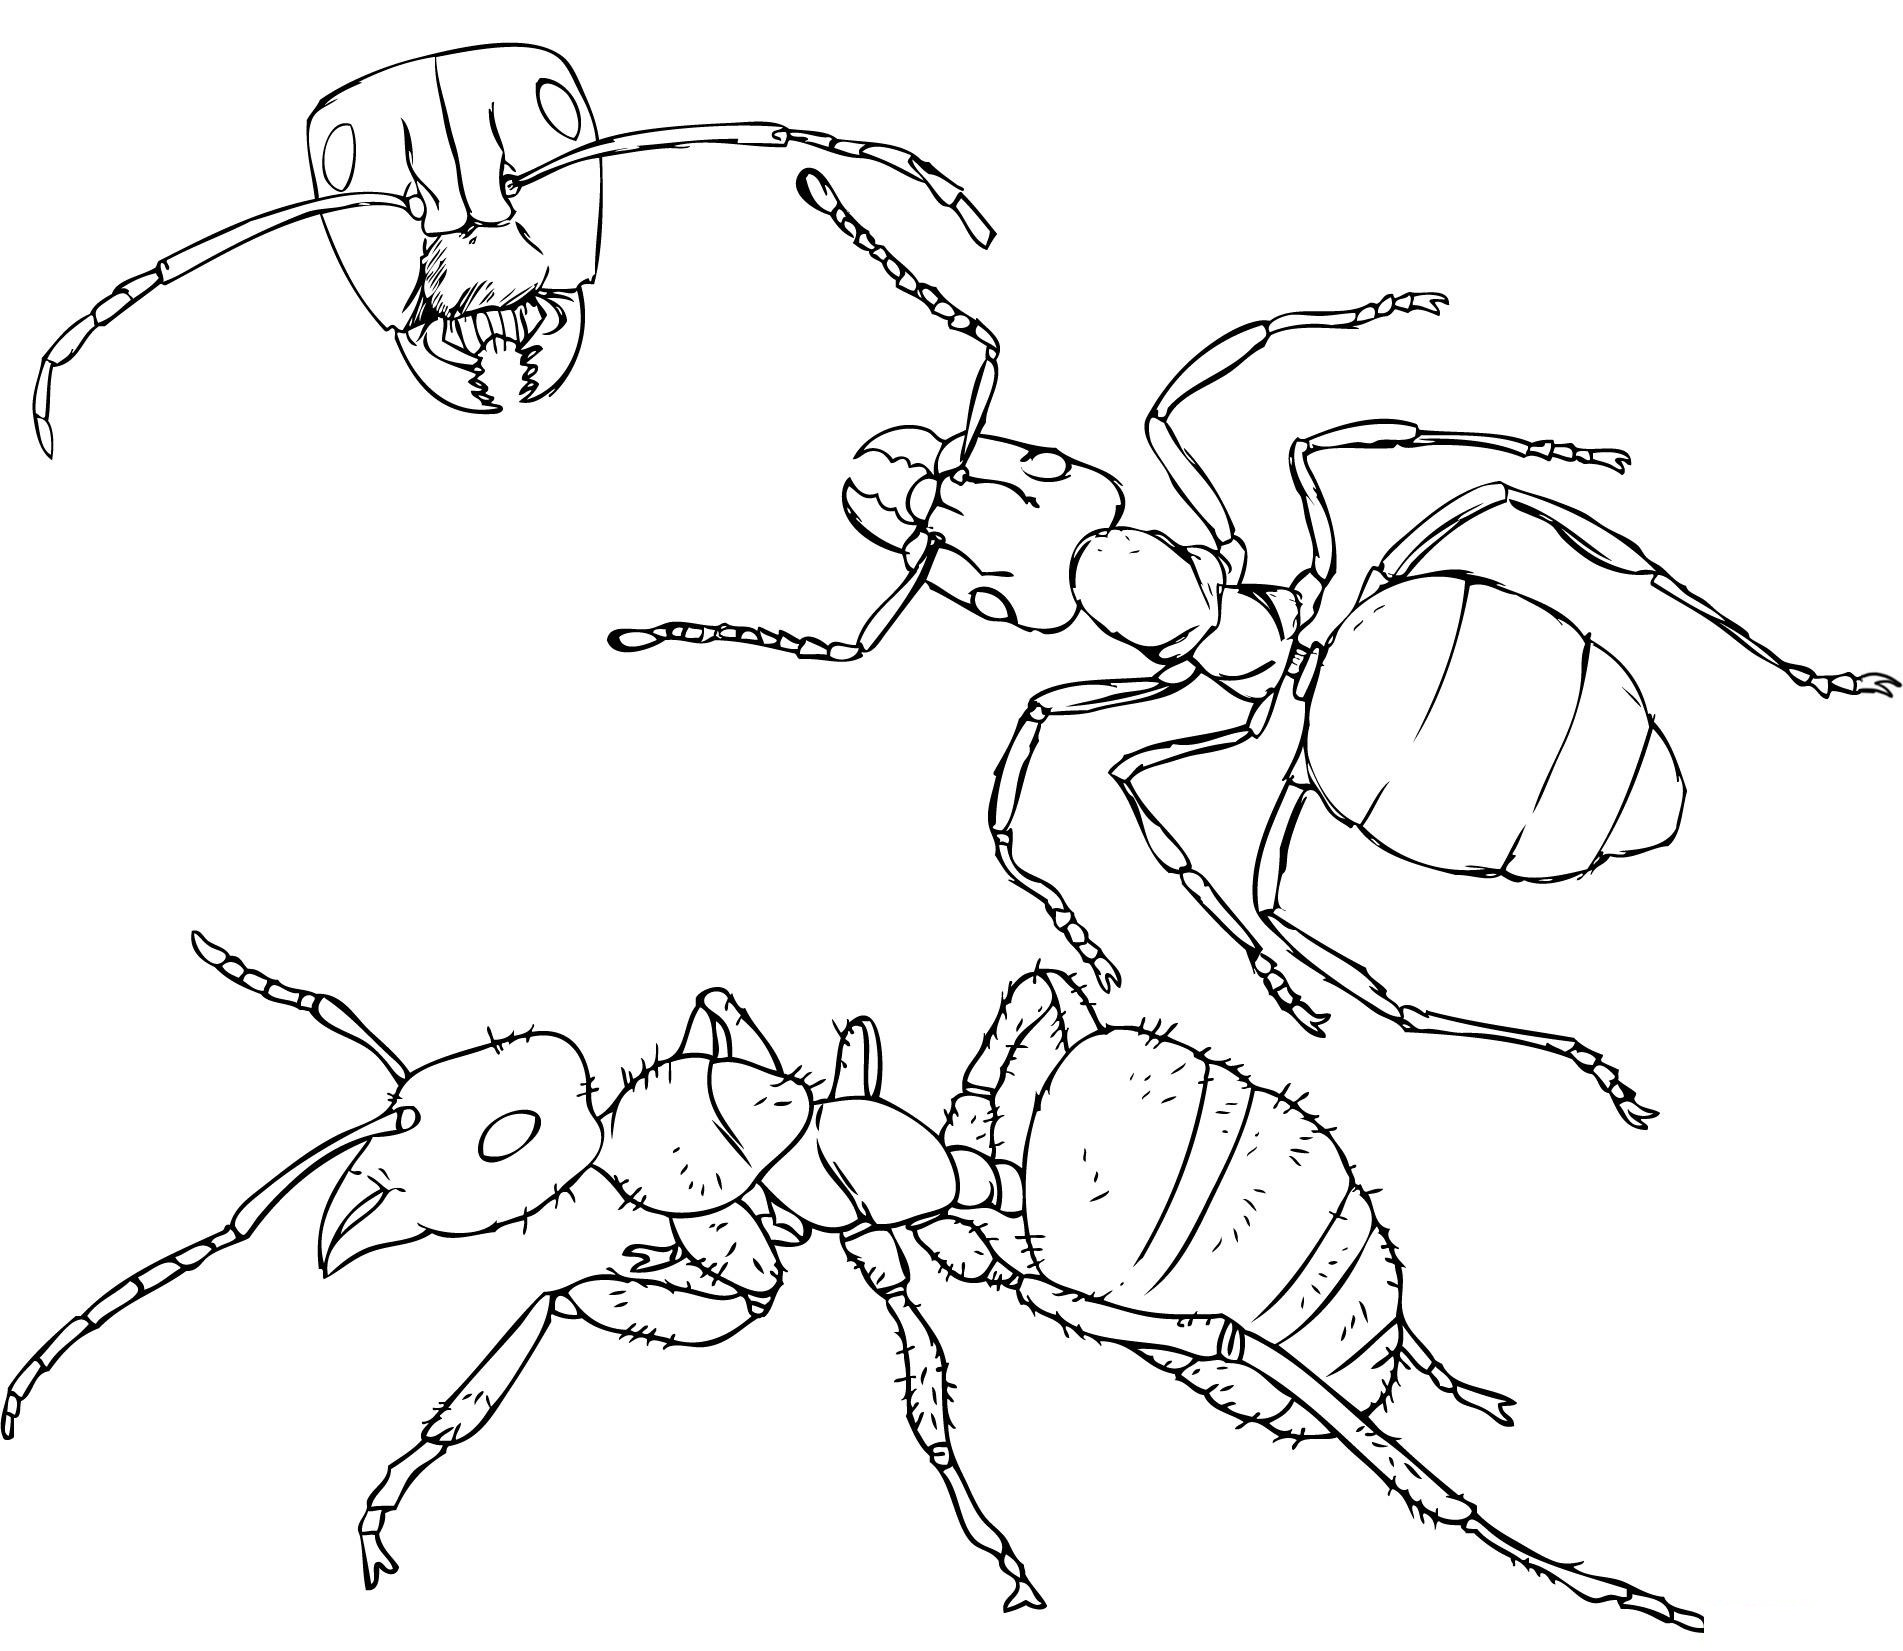 Clip Art Ants Coloring Page free printable ant coloring pages for kids pages